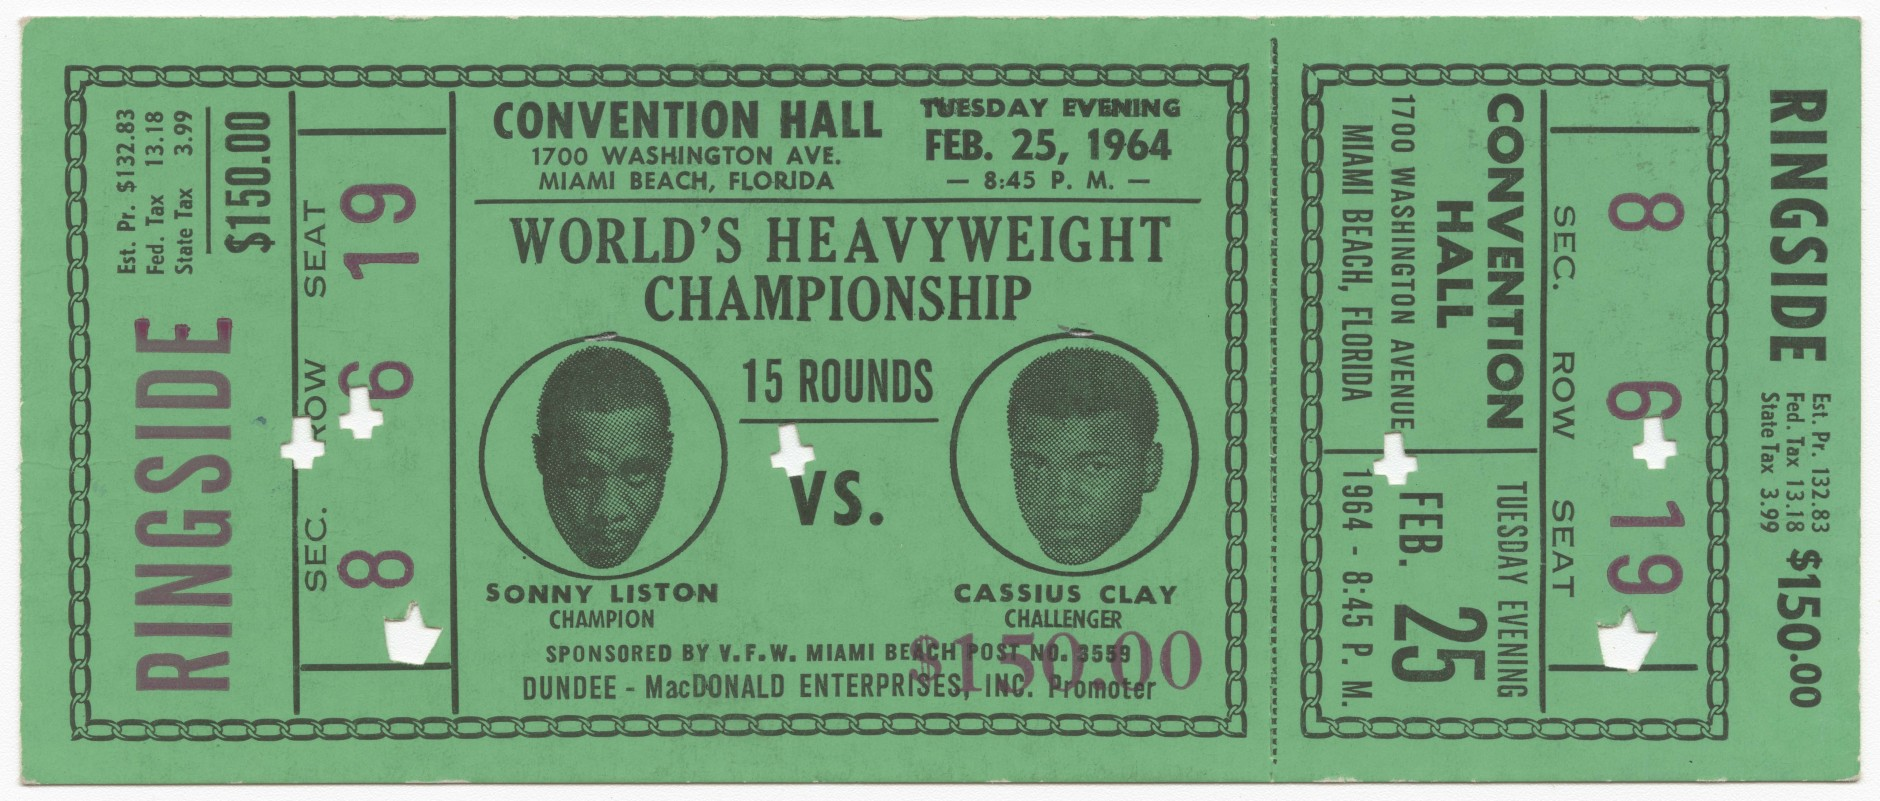 Green narrow ticket for the World Heavyweight Championship of Sonny Liston versus Cassius Clay (Muhammad Ali). (Courtesy Collection of the Smithsonian National Museum of African American History and Culture)